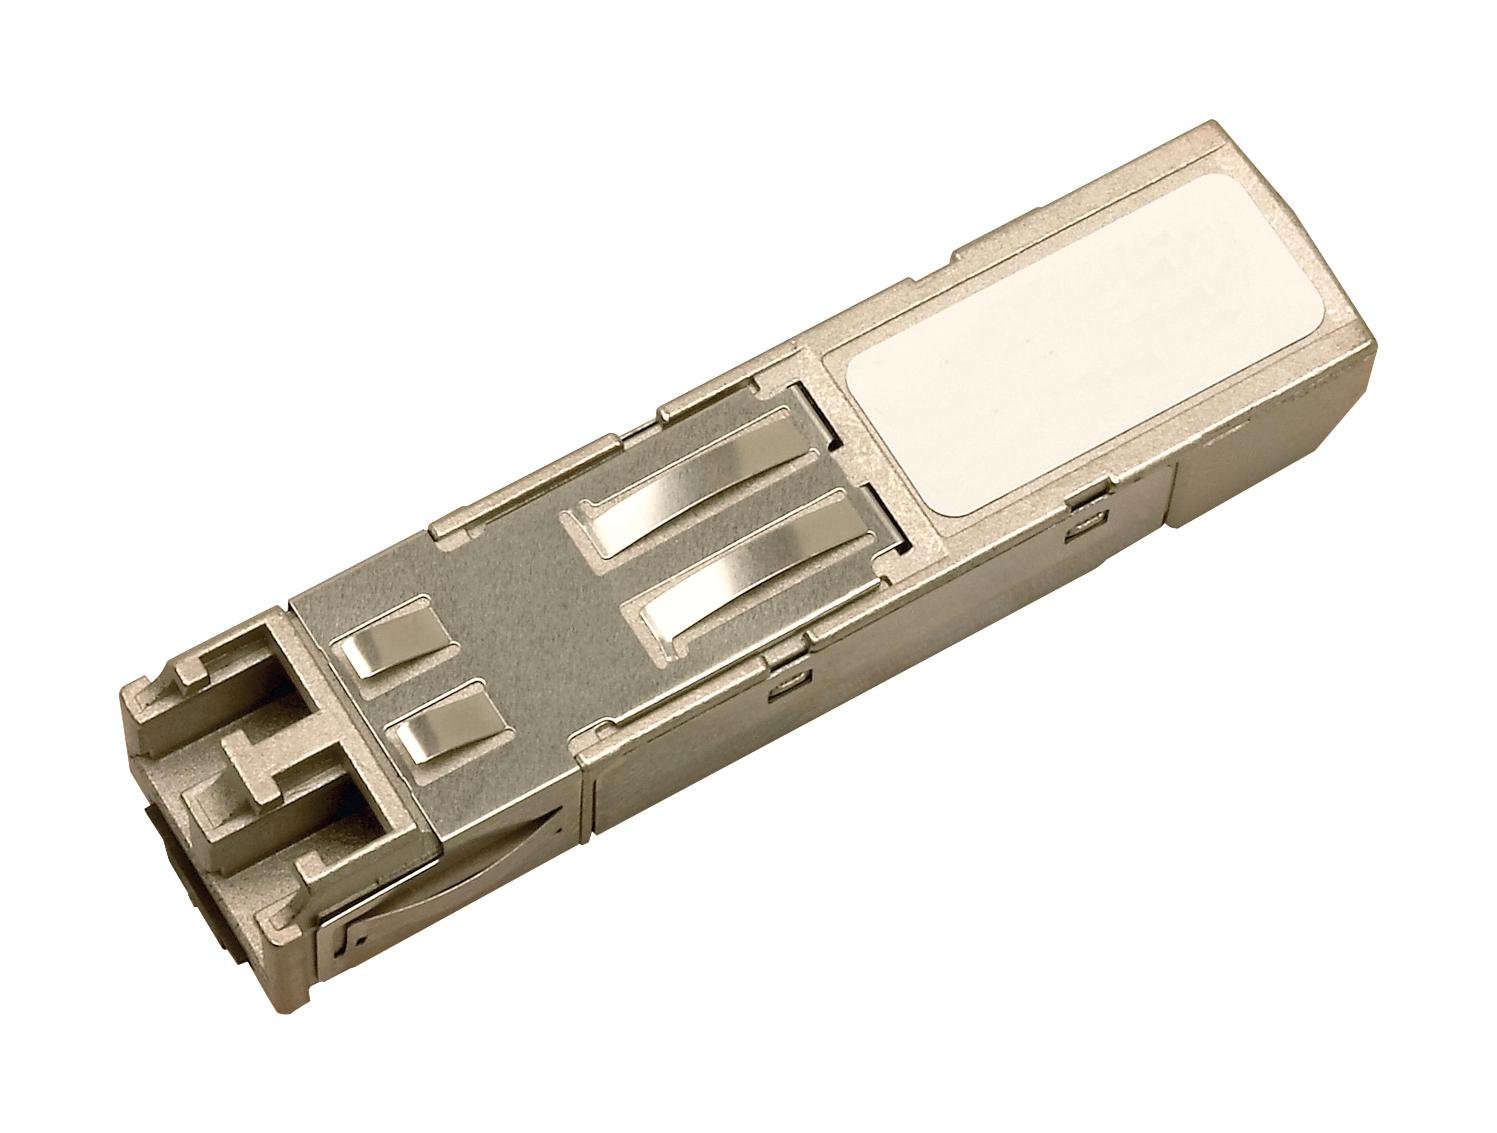 BROADCOM LIMITED AFBR-5710LZ Fiber optics, Transceiver module